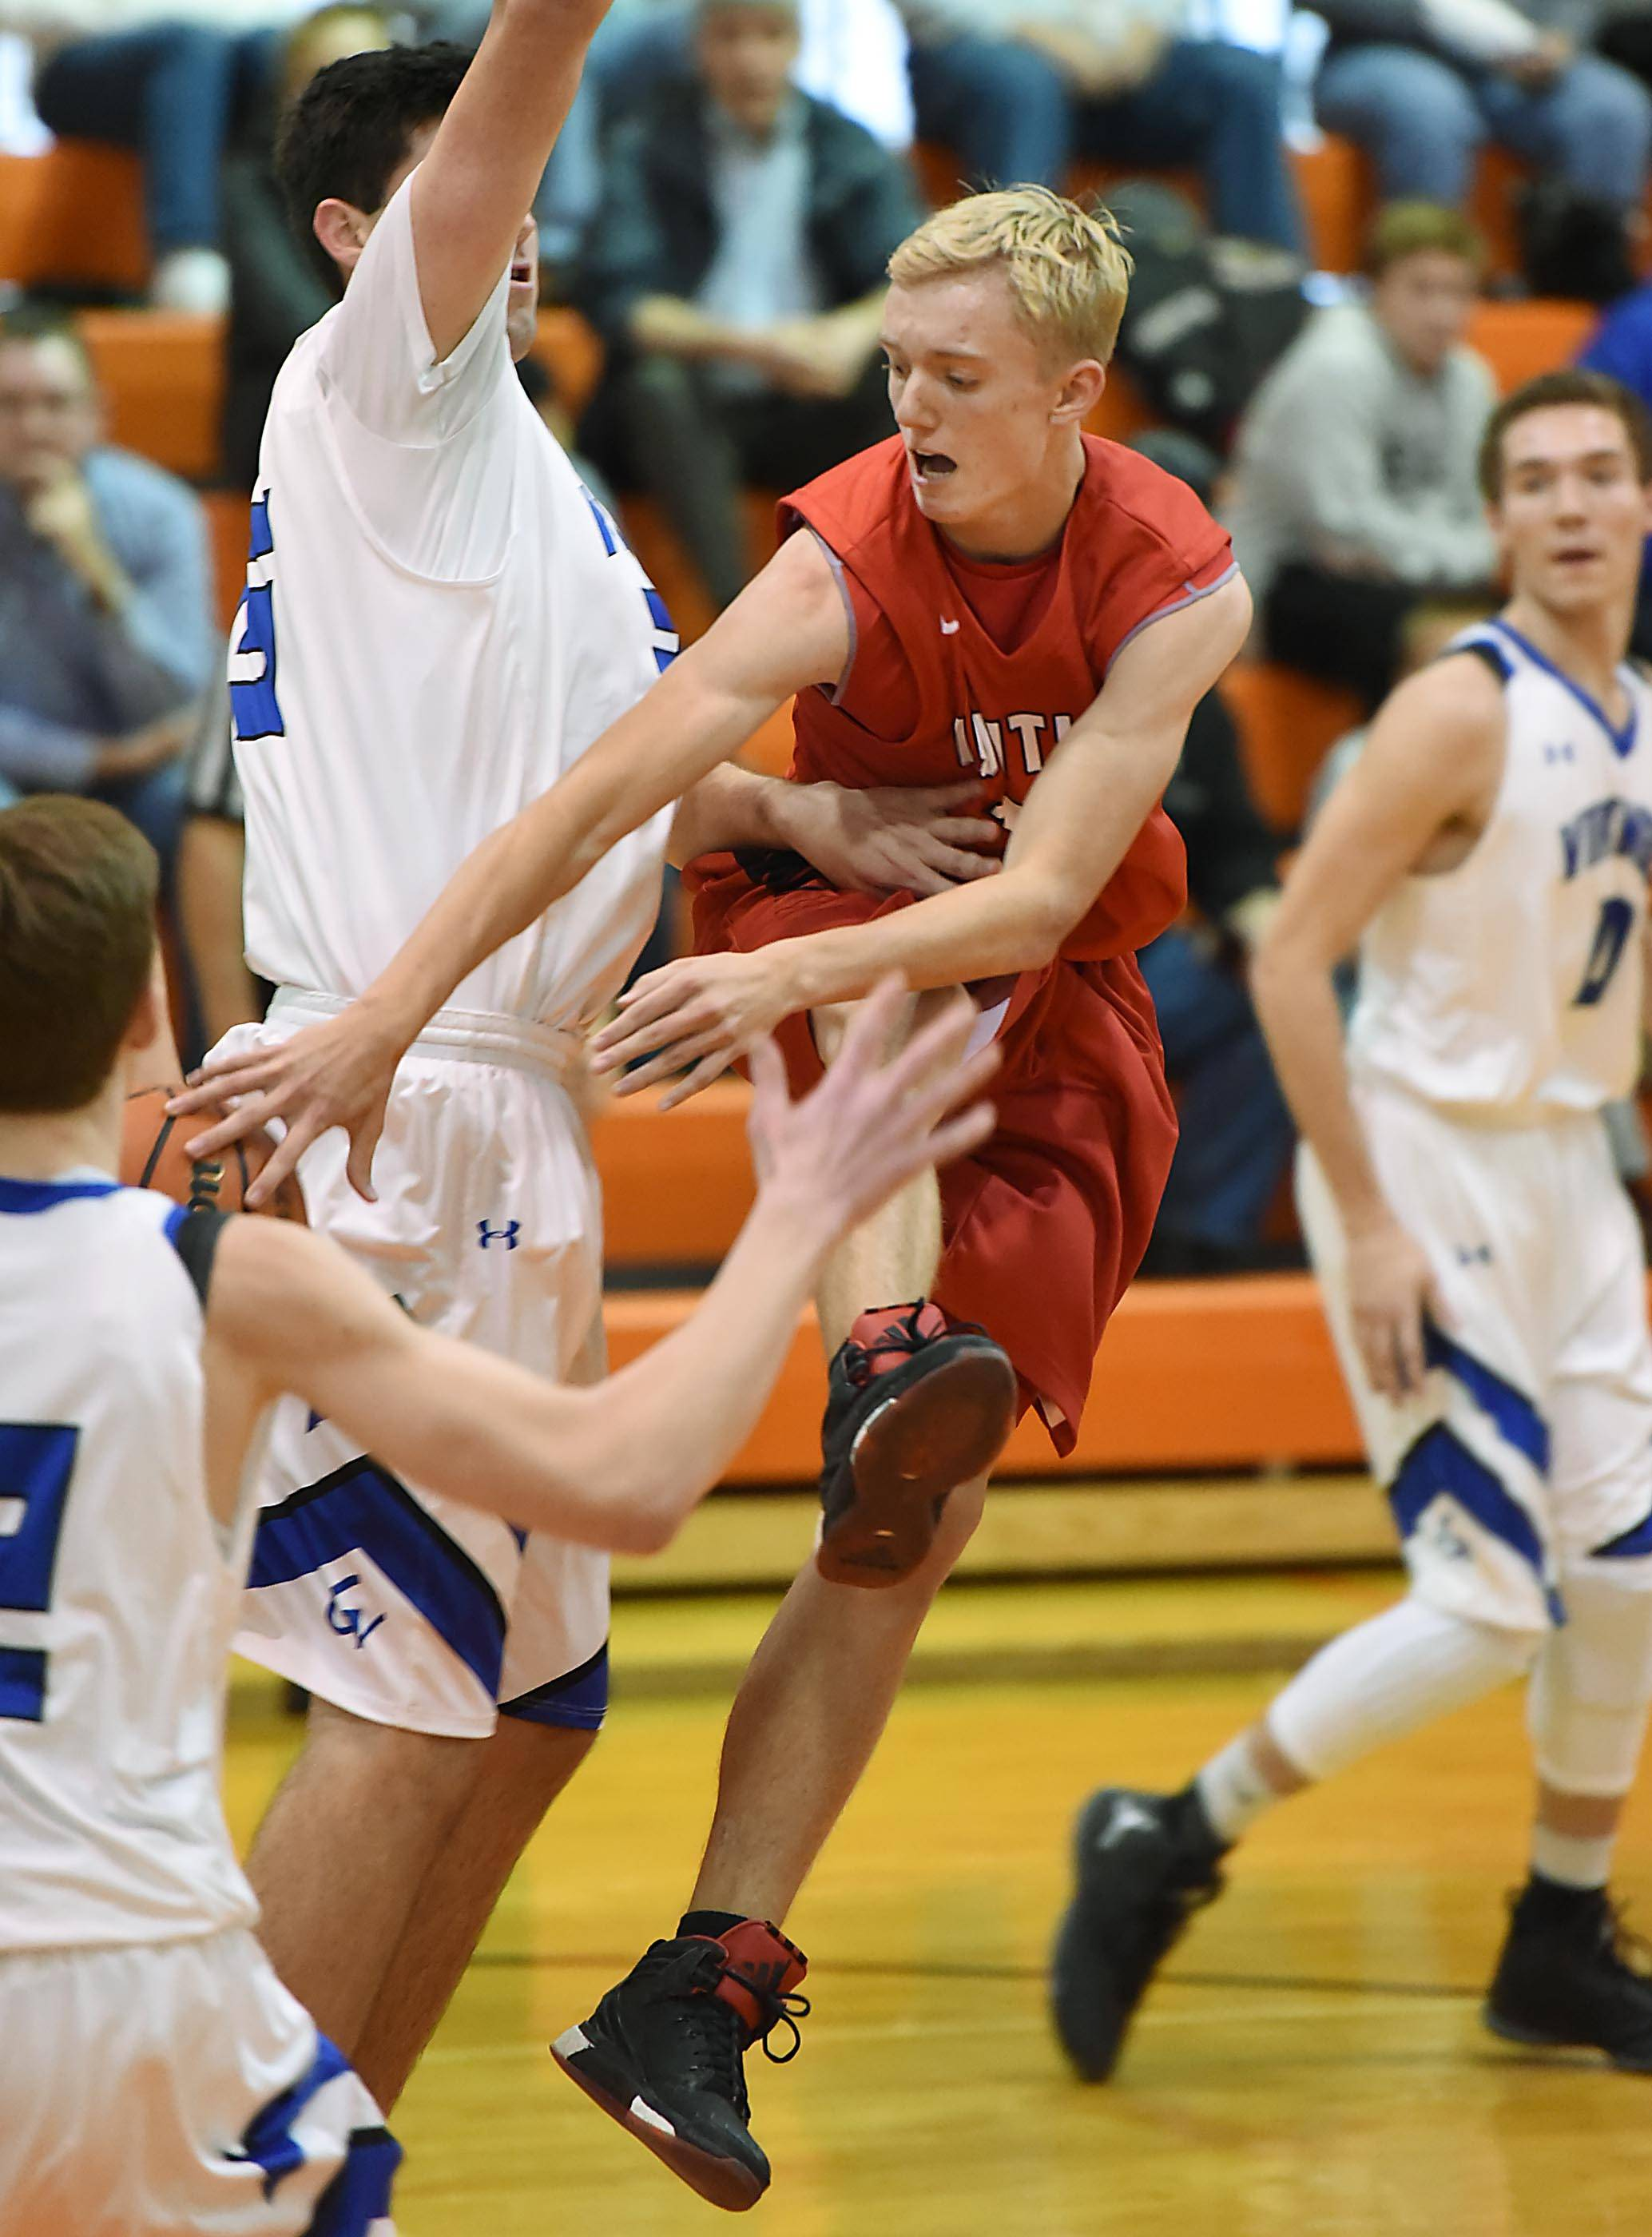 Huntley's Cory Knipp makes a pass around Geneva's Dom Navigato Wednesday at Crystal Lake Central High School.